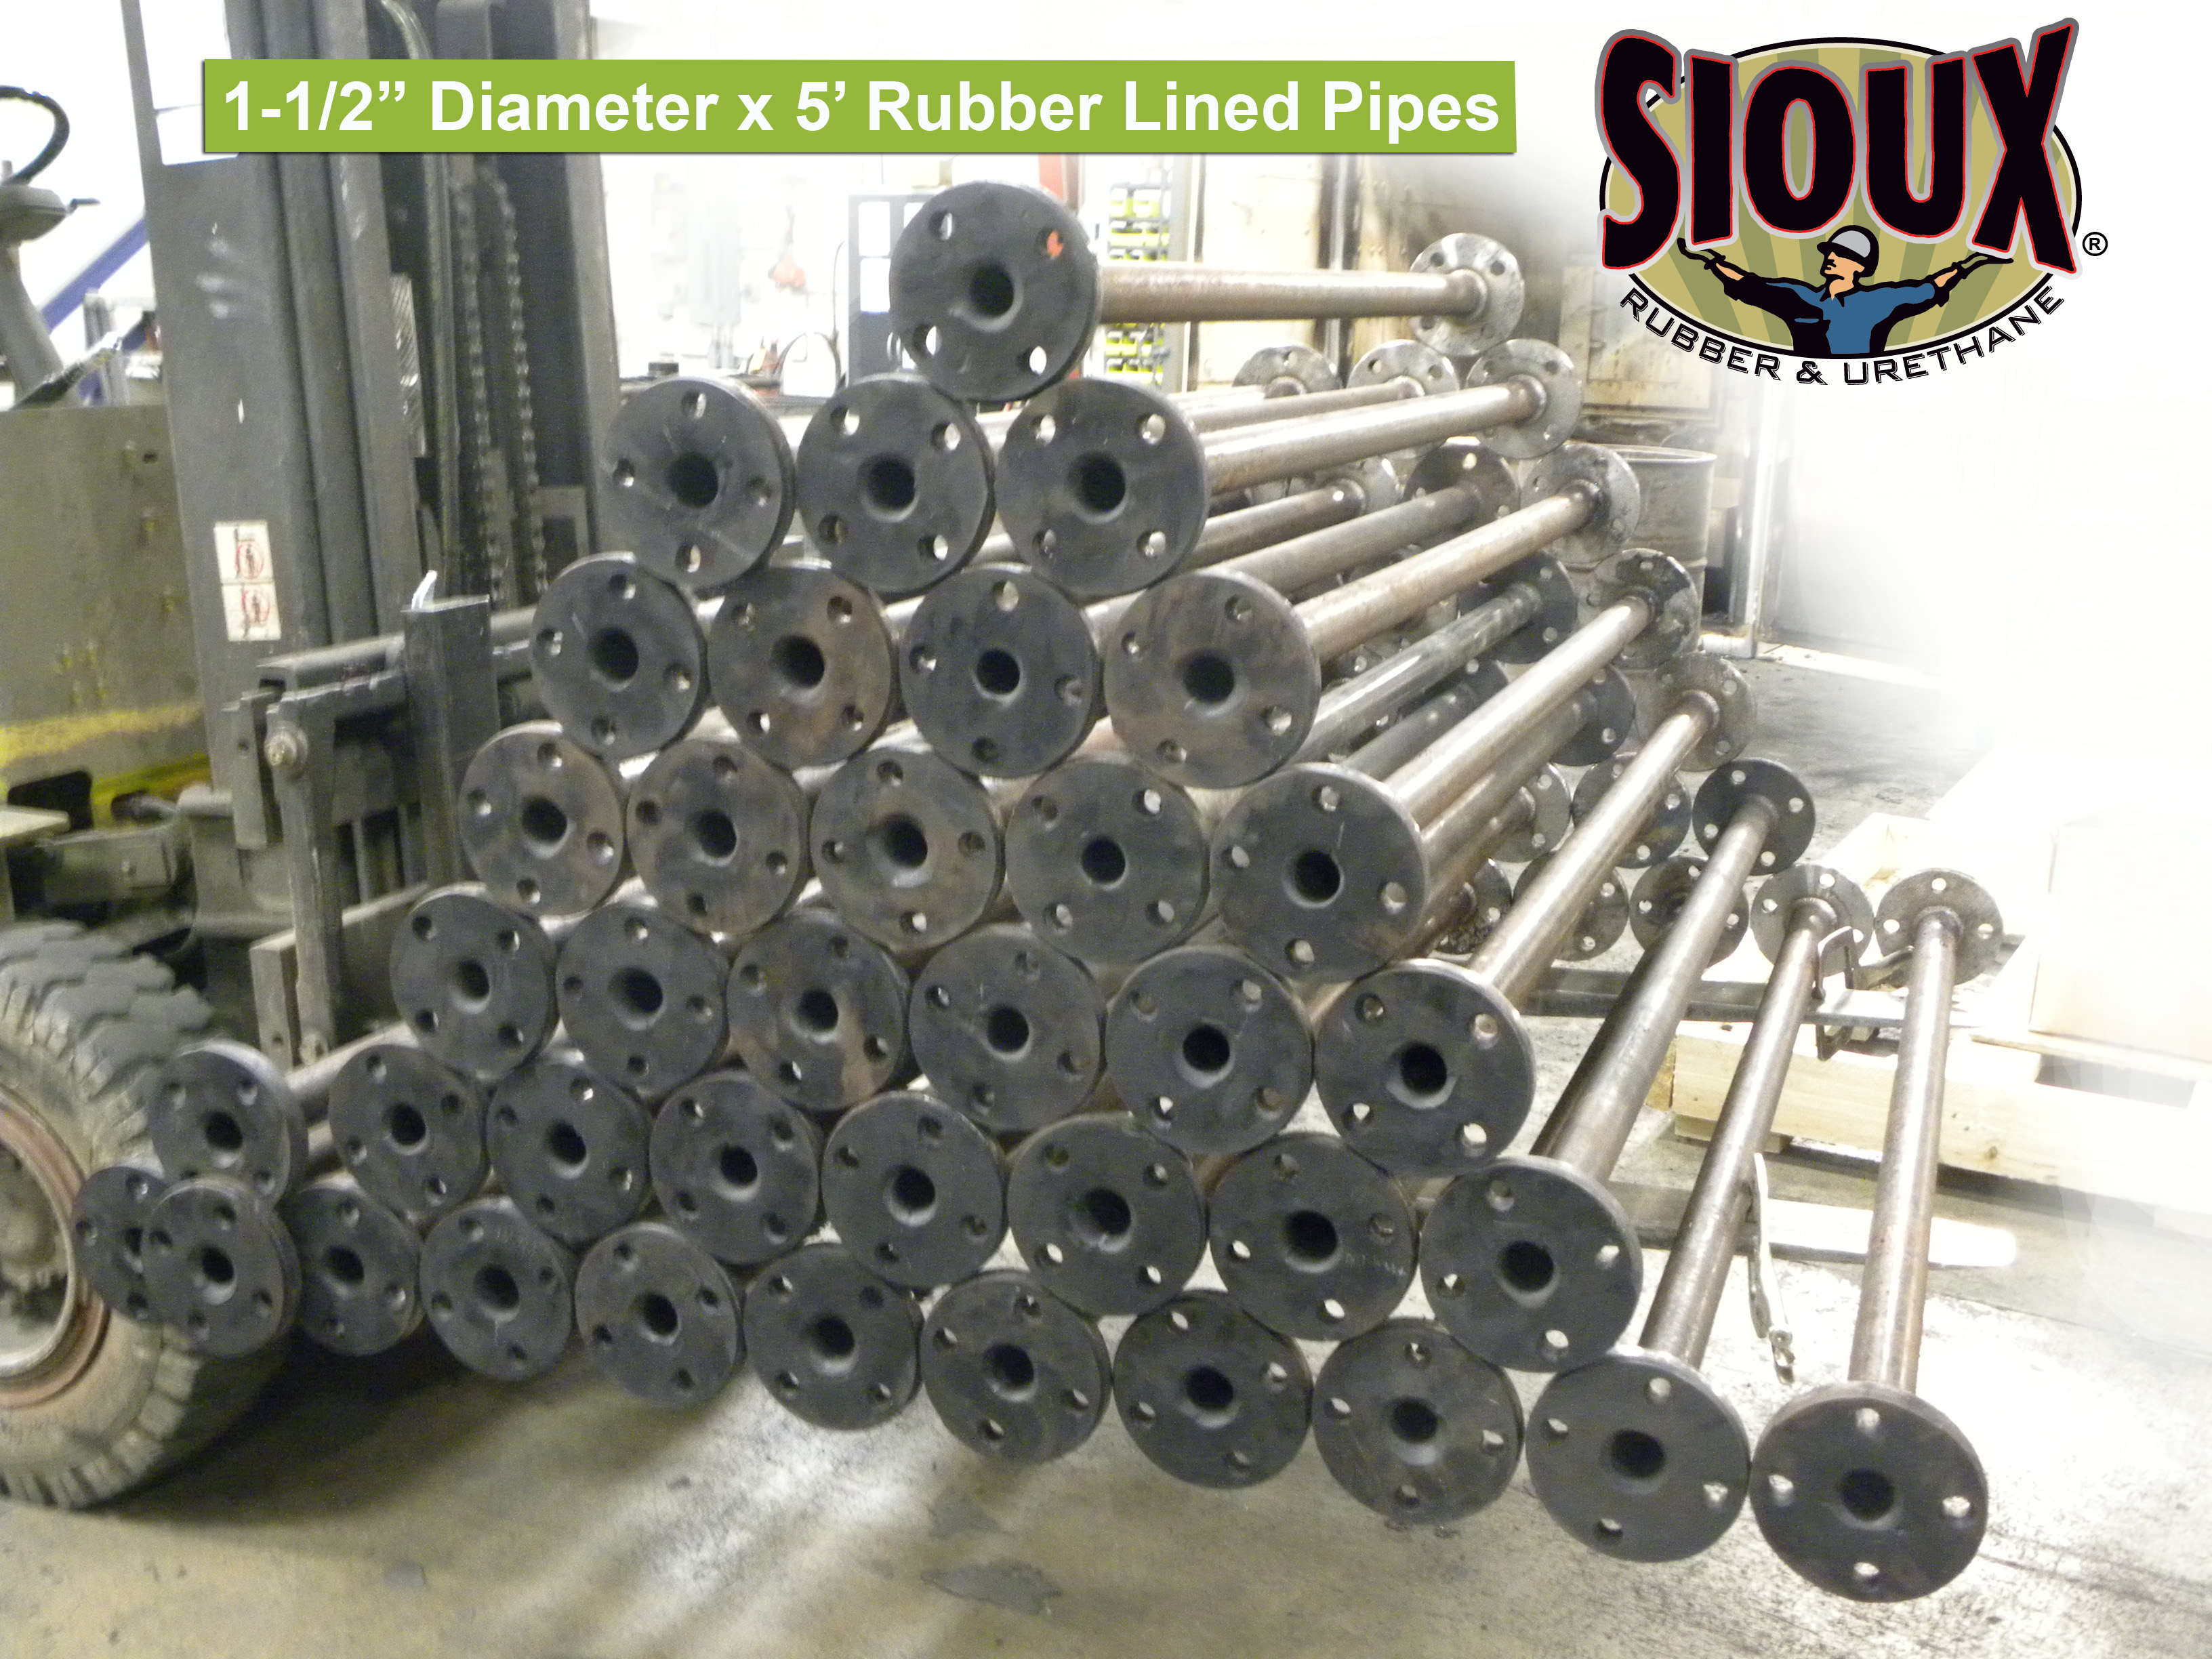 """1-1/2"""" diameter Pipe-Yup, we can rubber line that!"""